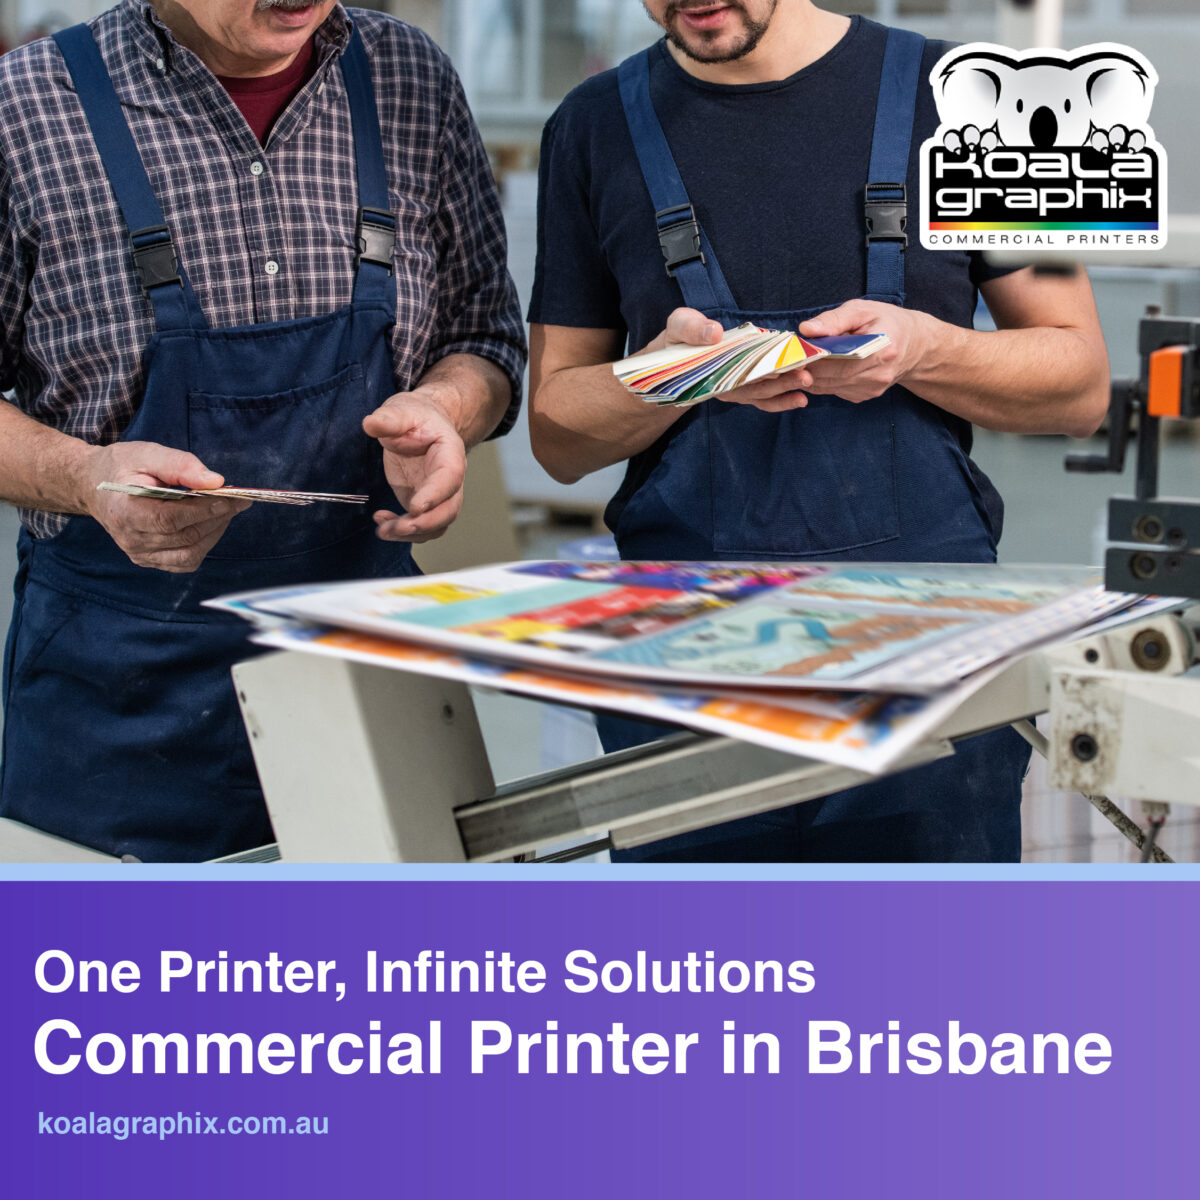 printers in Brisbane commercial